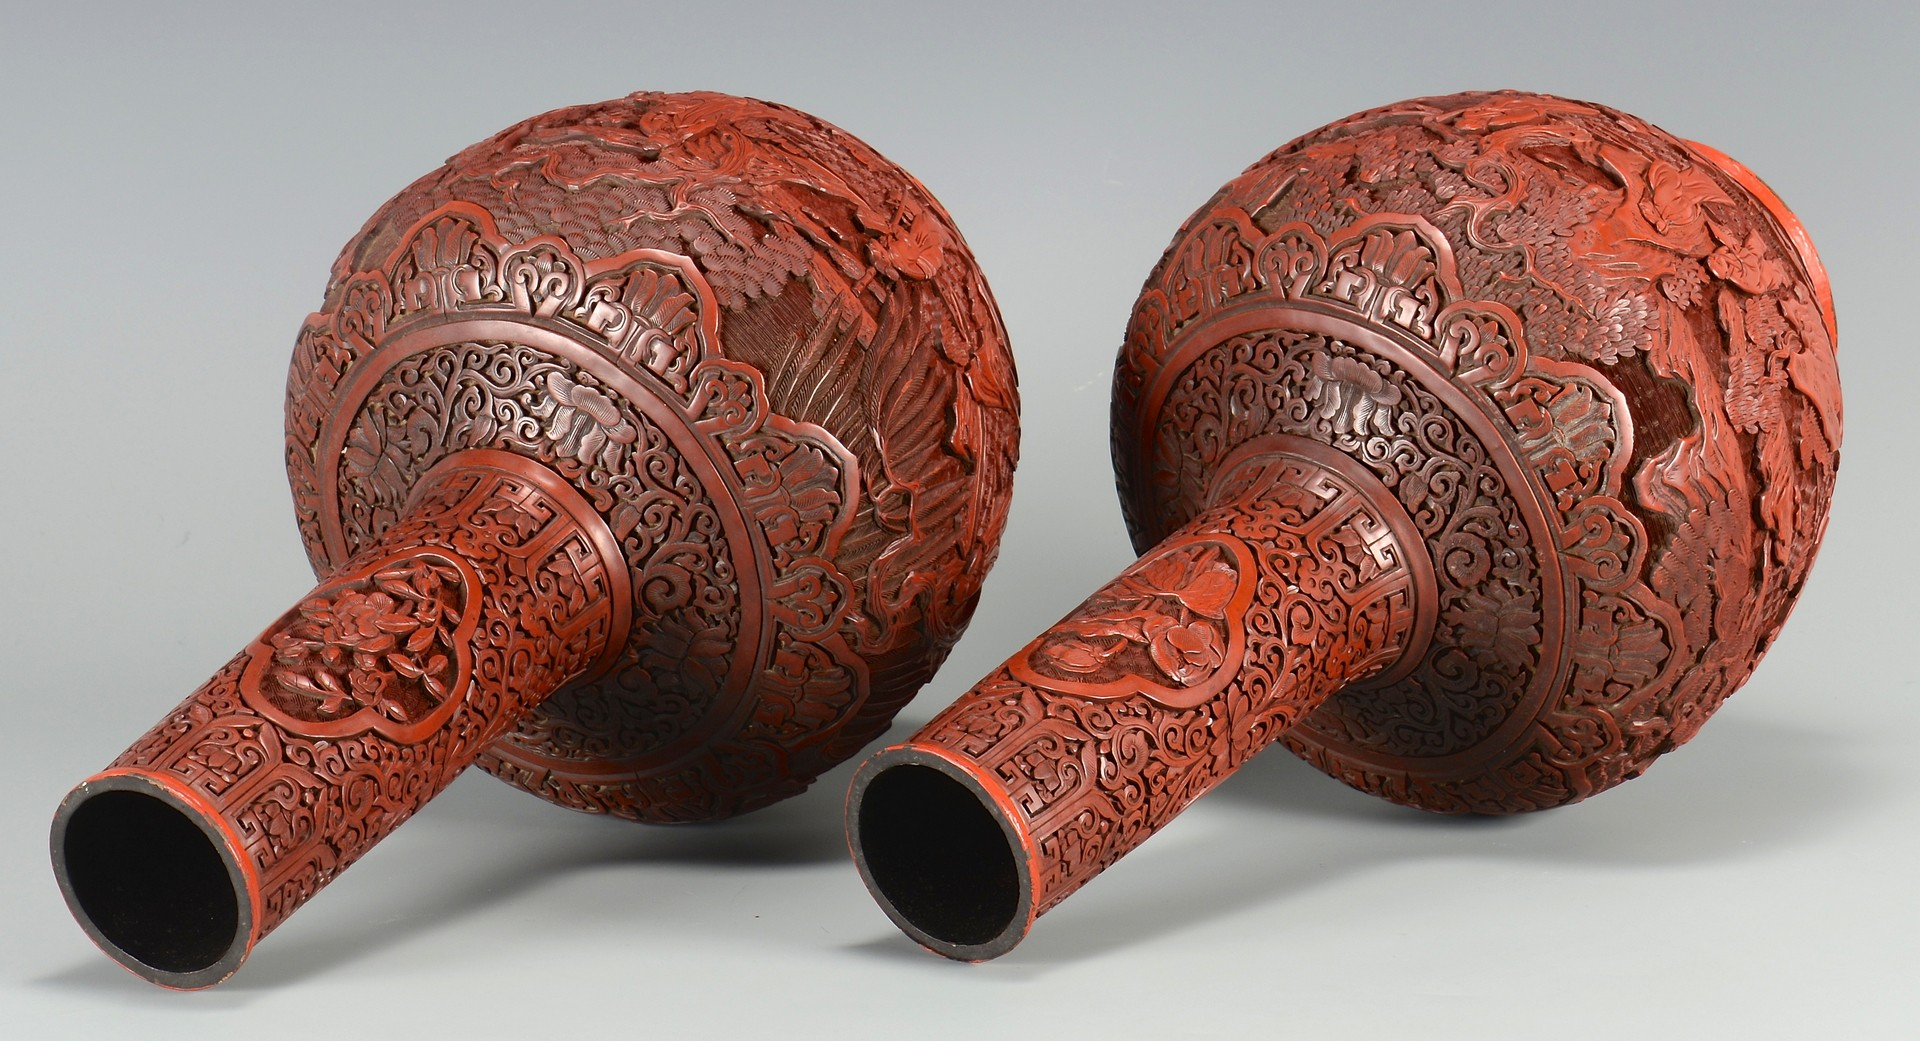 Lot 8: Pr. Chinese Cinnabar Bottle Form Vases